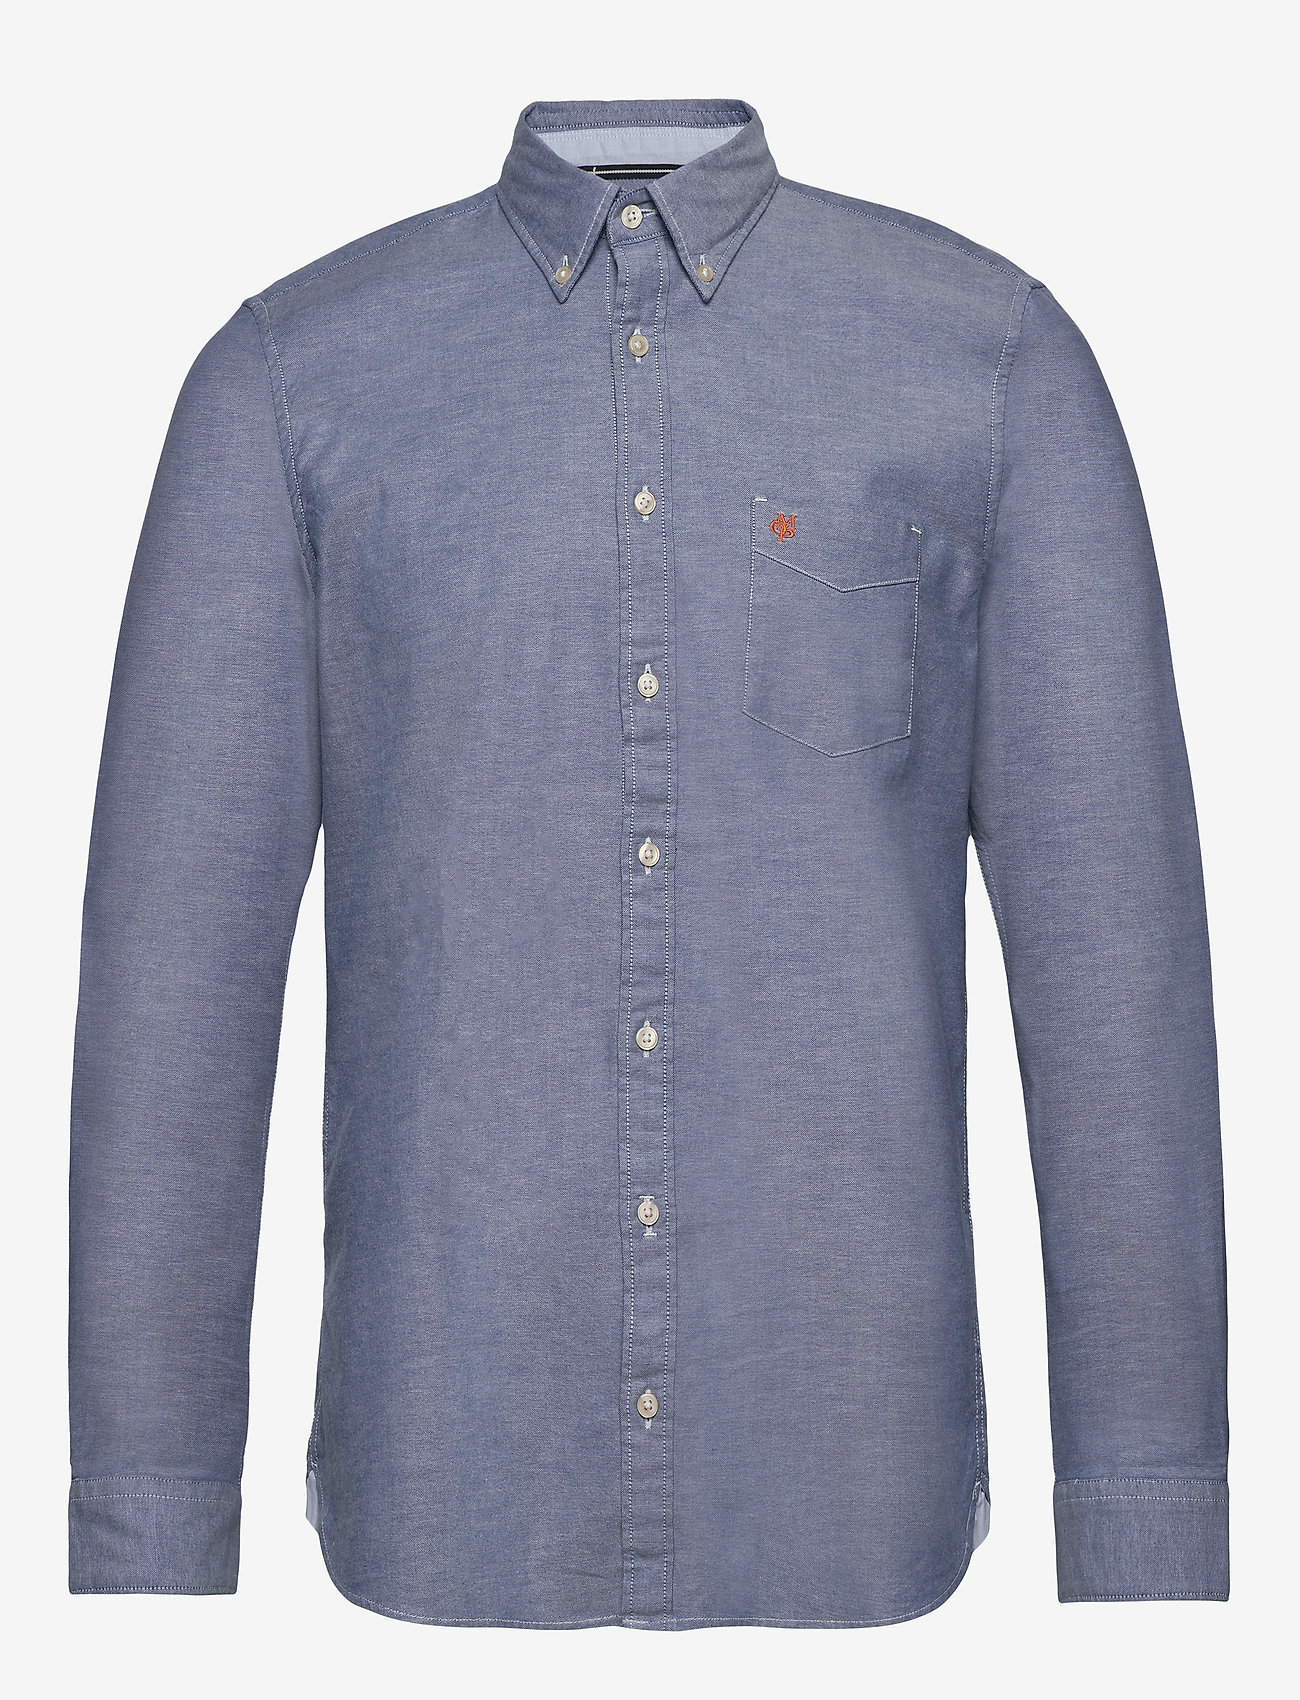 Marc O'Polo - Button down, long sleeve, stitching - chemises basiques - multi/mazarine blue - 0